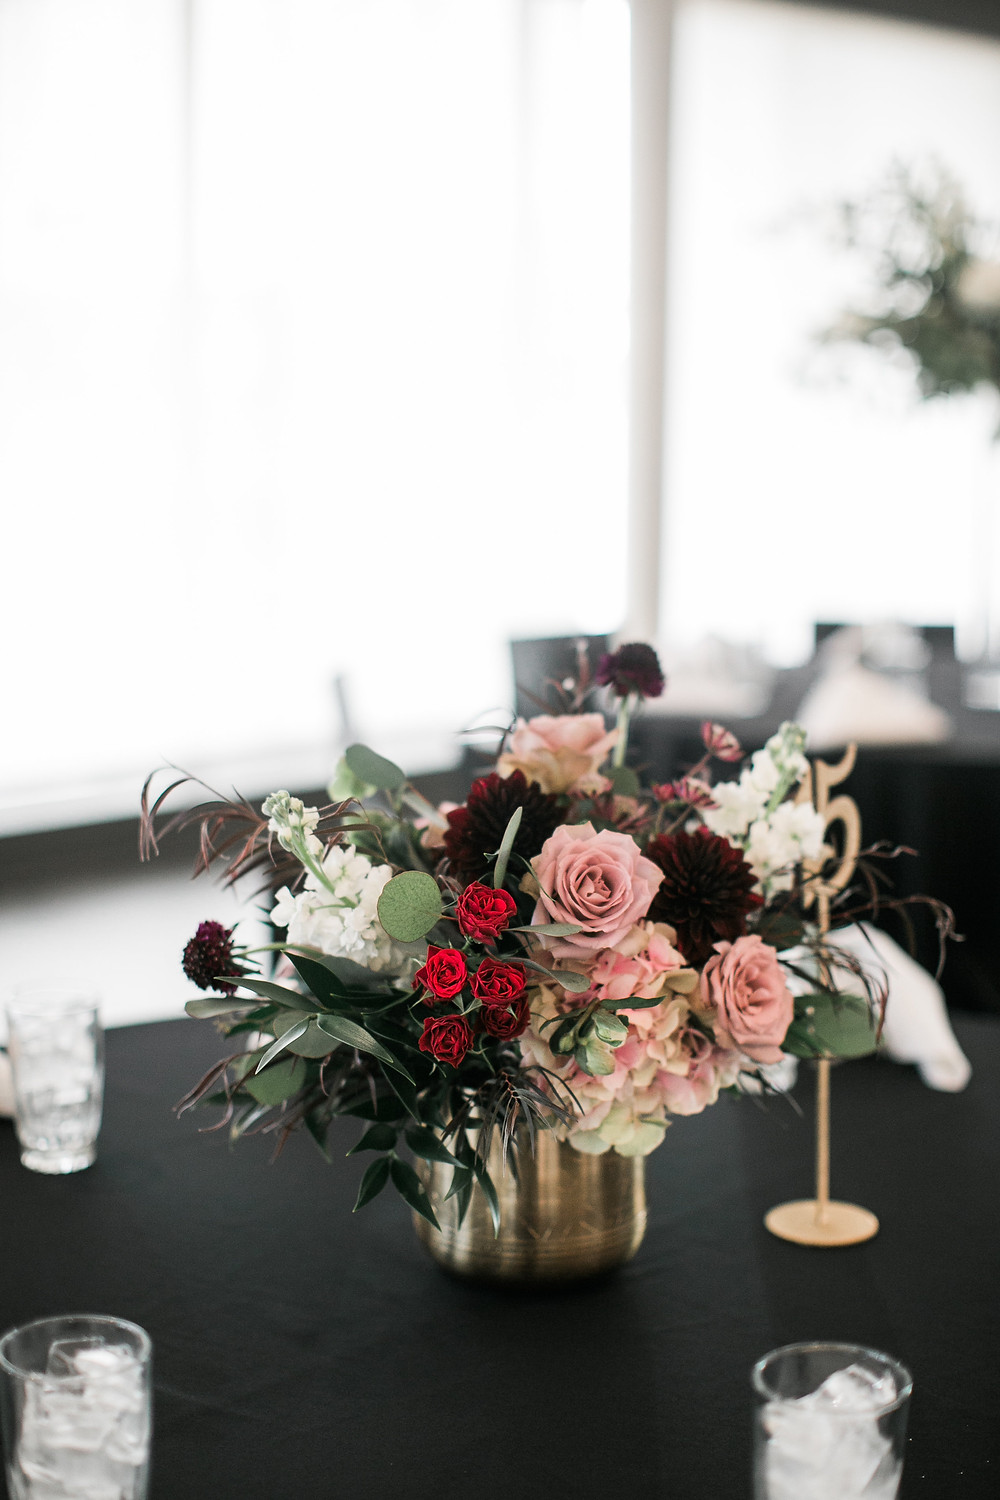 wedding reception centerpiece by studio bloom iowa with mauve roses, burgundy dahlias, stock, antique hydrangea in gold vase